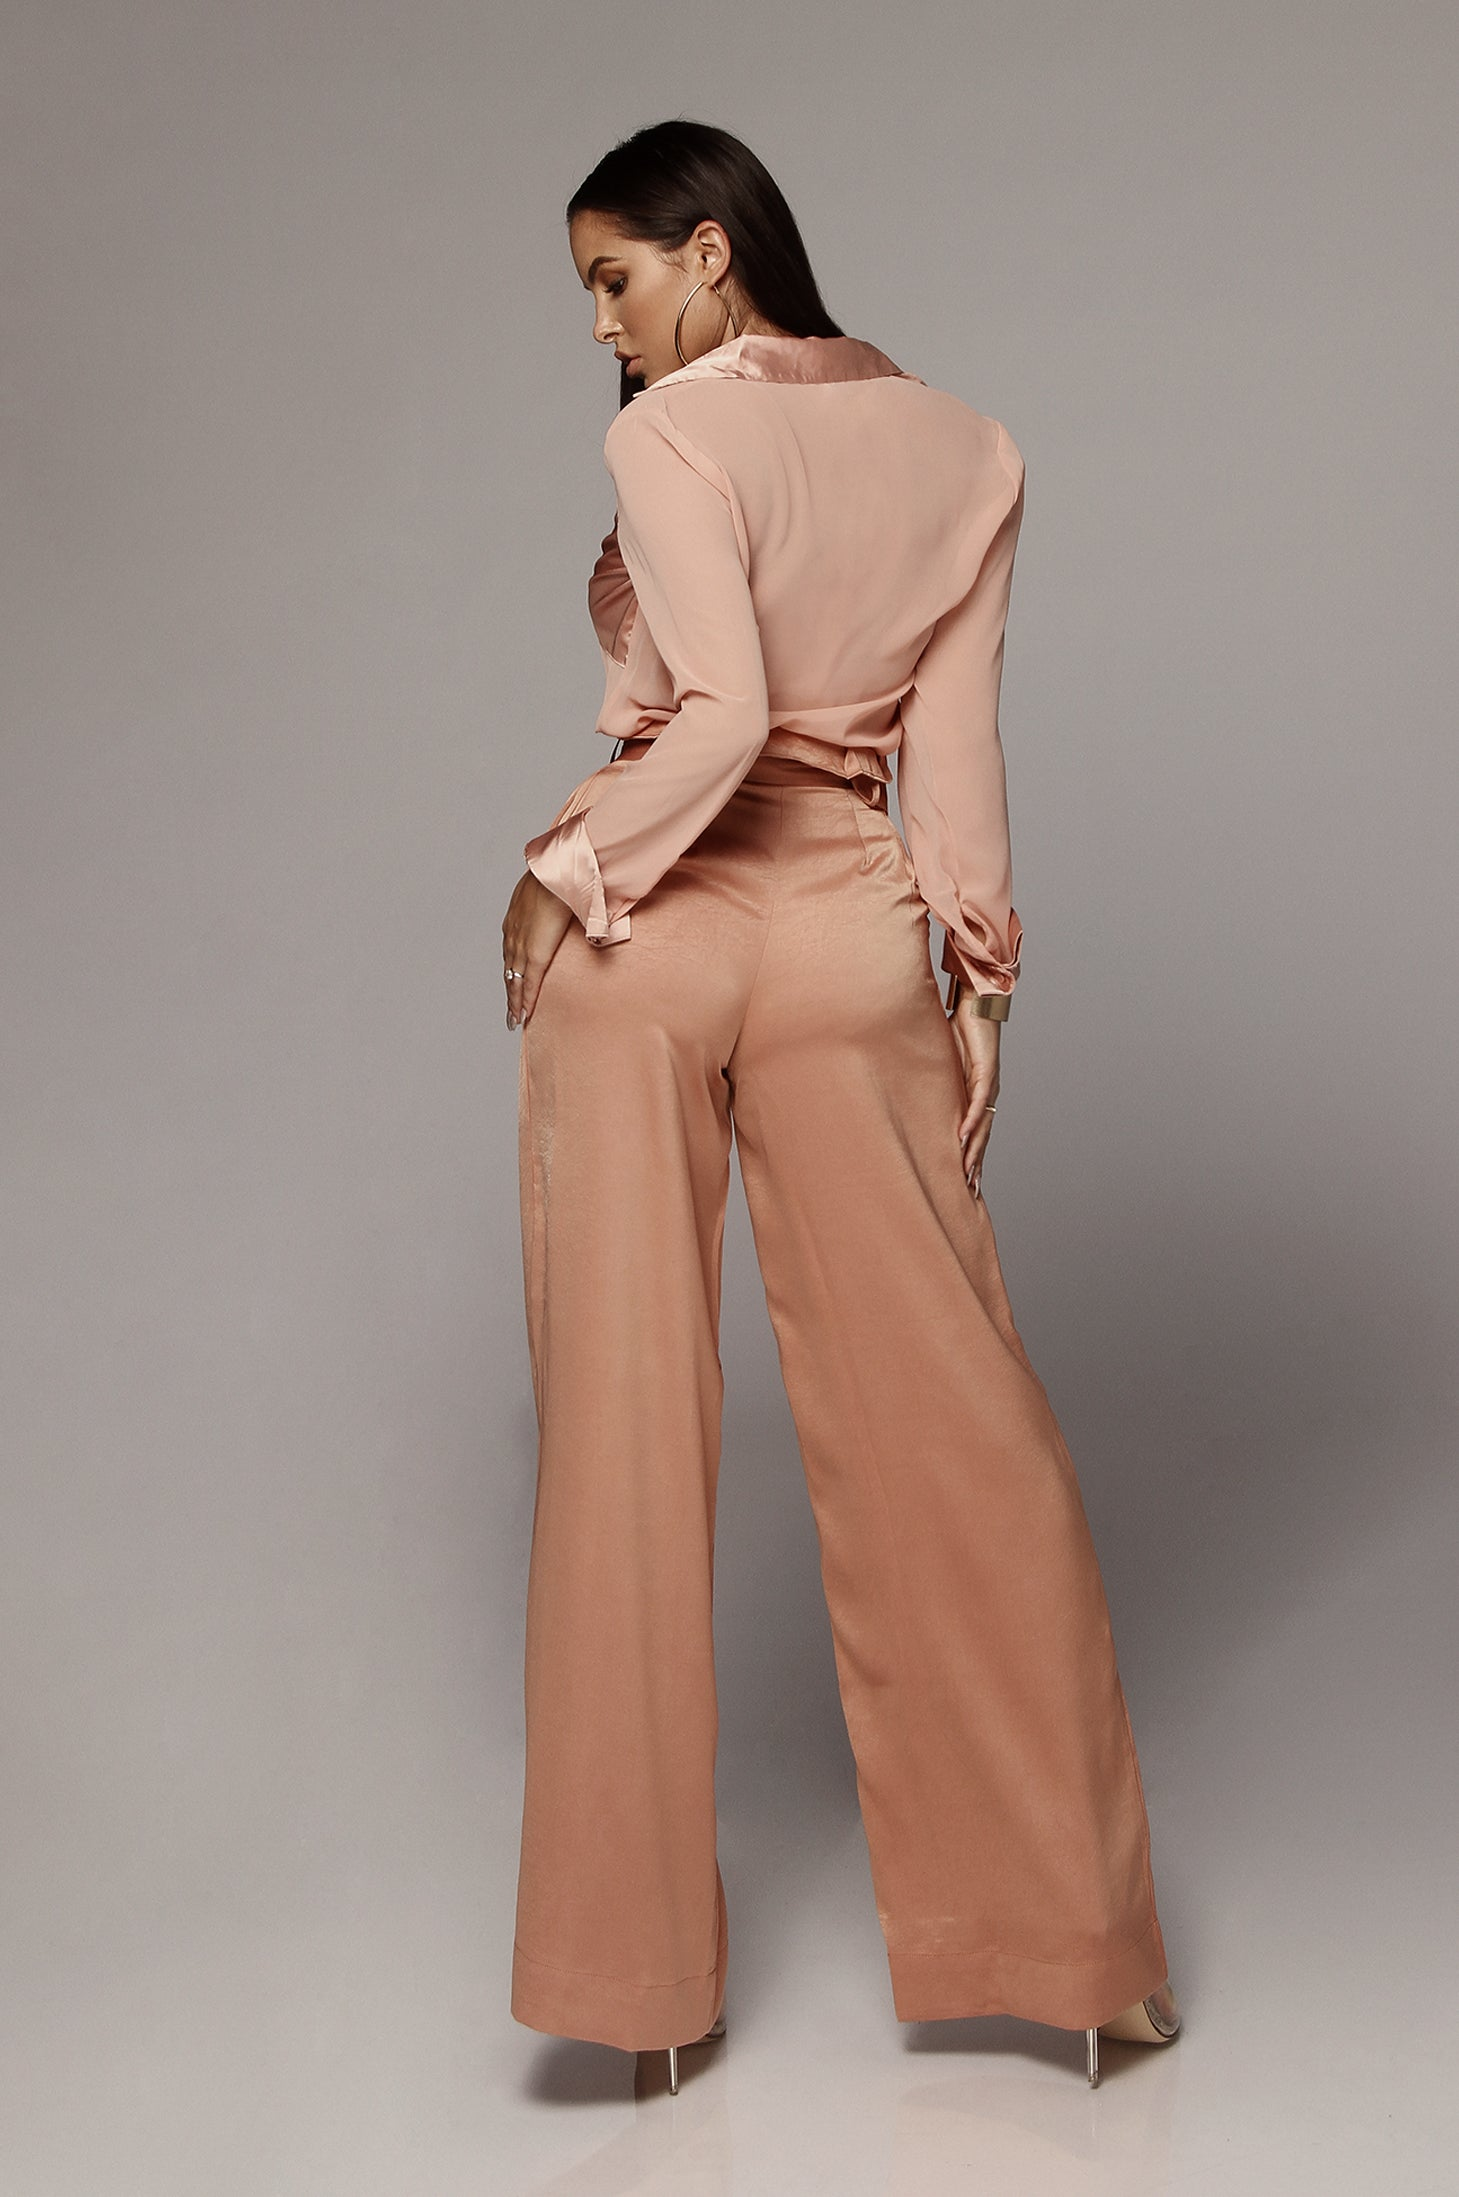 Clay Abigail Belted Trousers